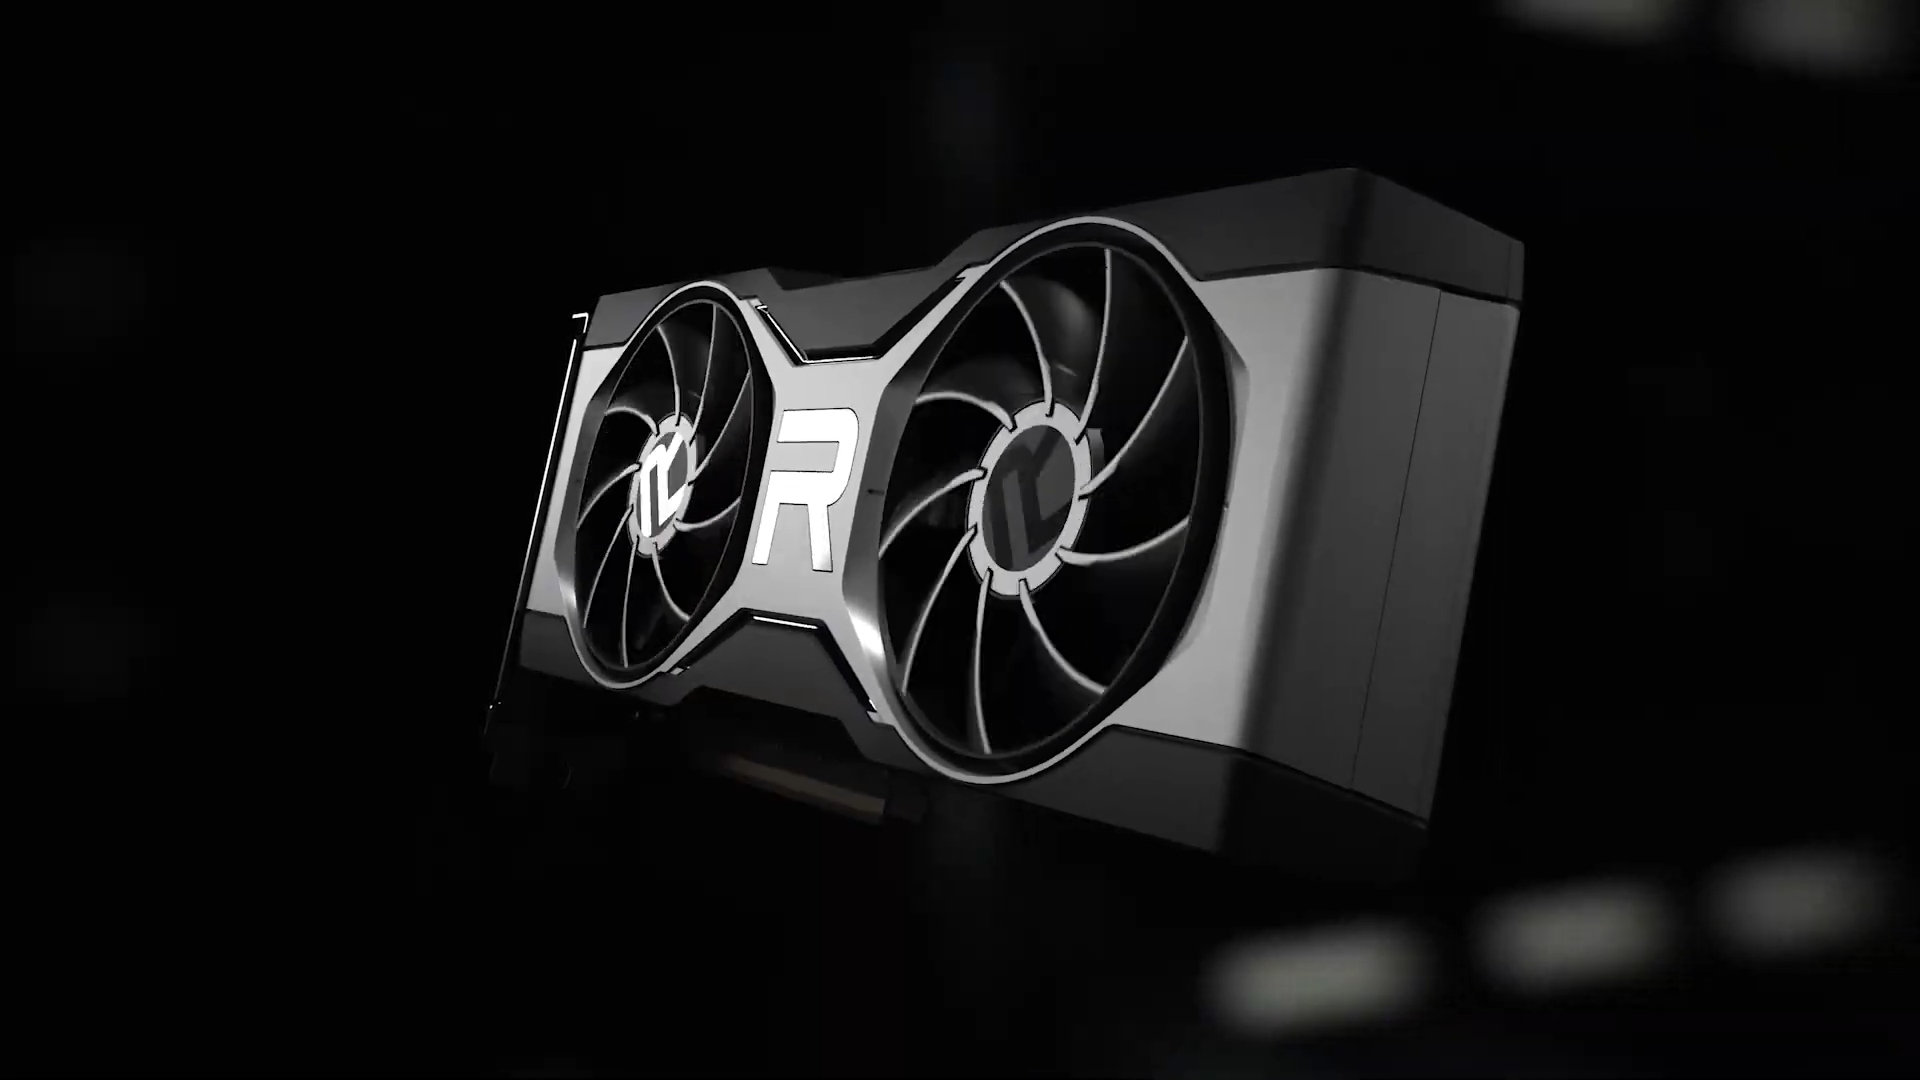 amd-rx-6600-xt-price-rumors-could-disappoint-gamers-hunting-for-a-budget-gpu